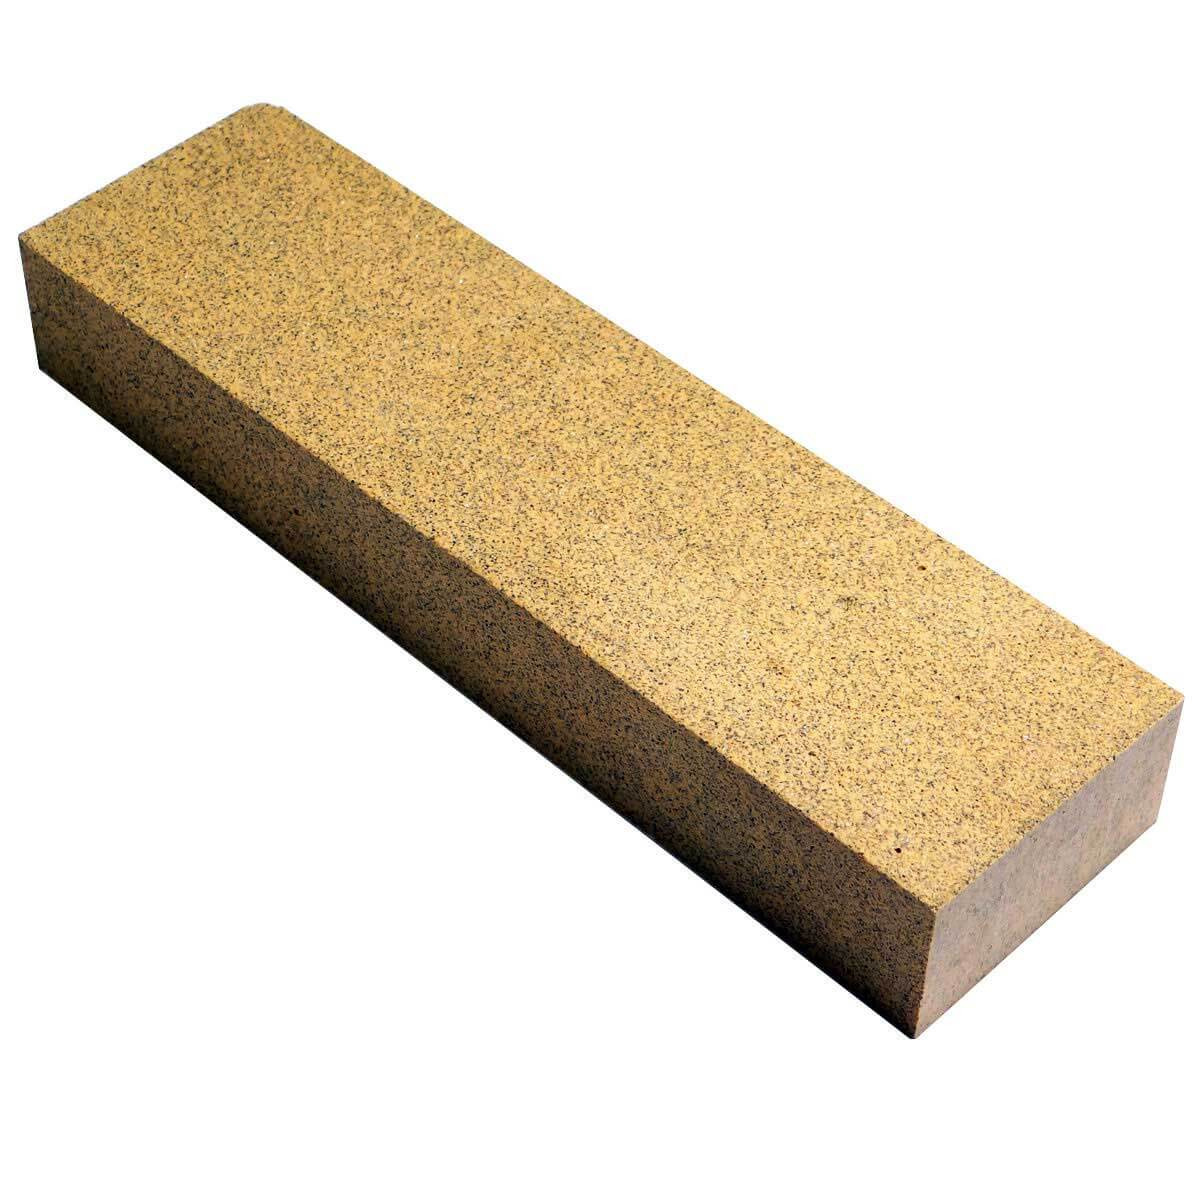 solid gold, dressing stone, diamond blade, sharpen